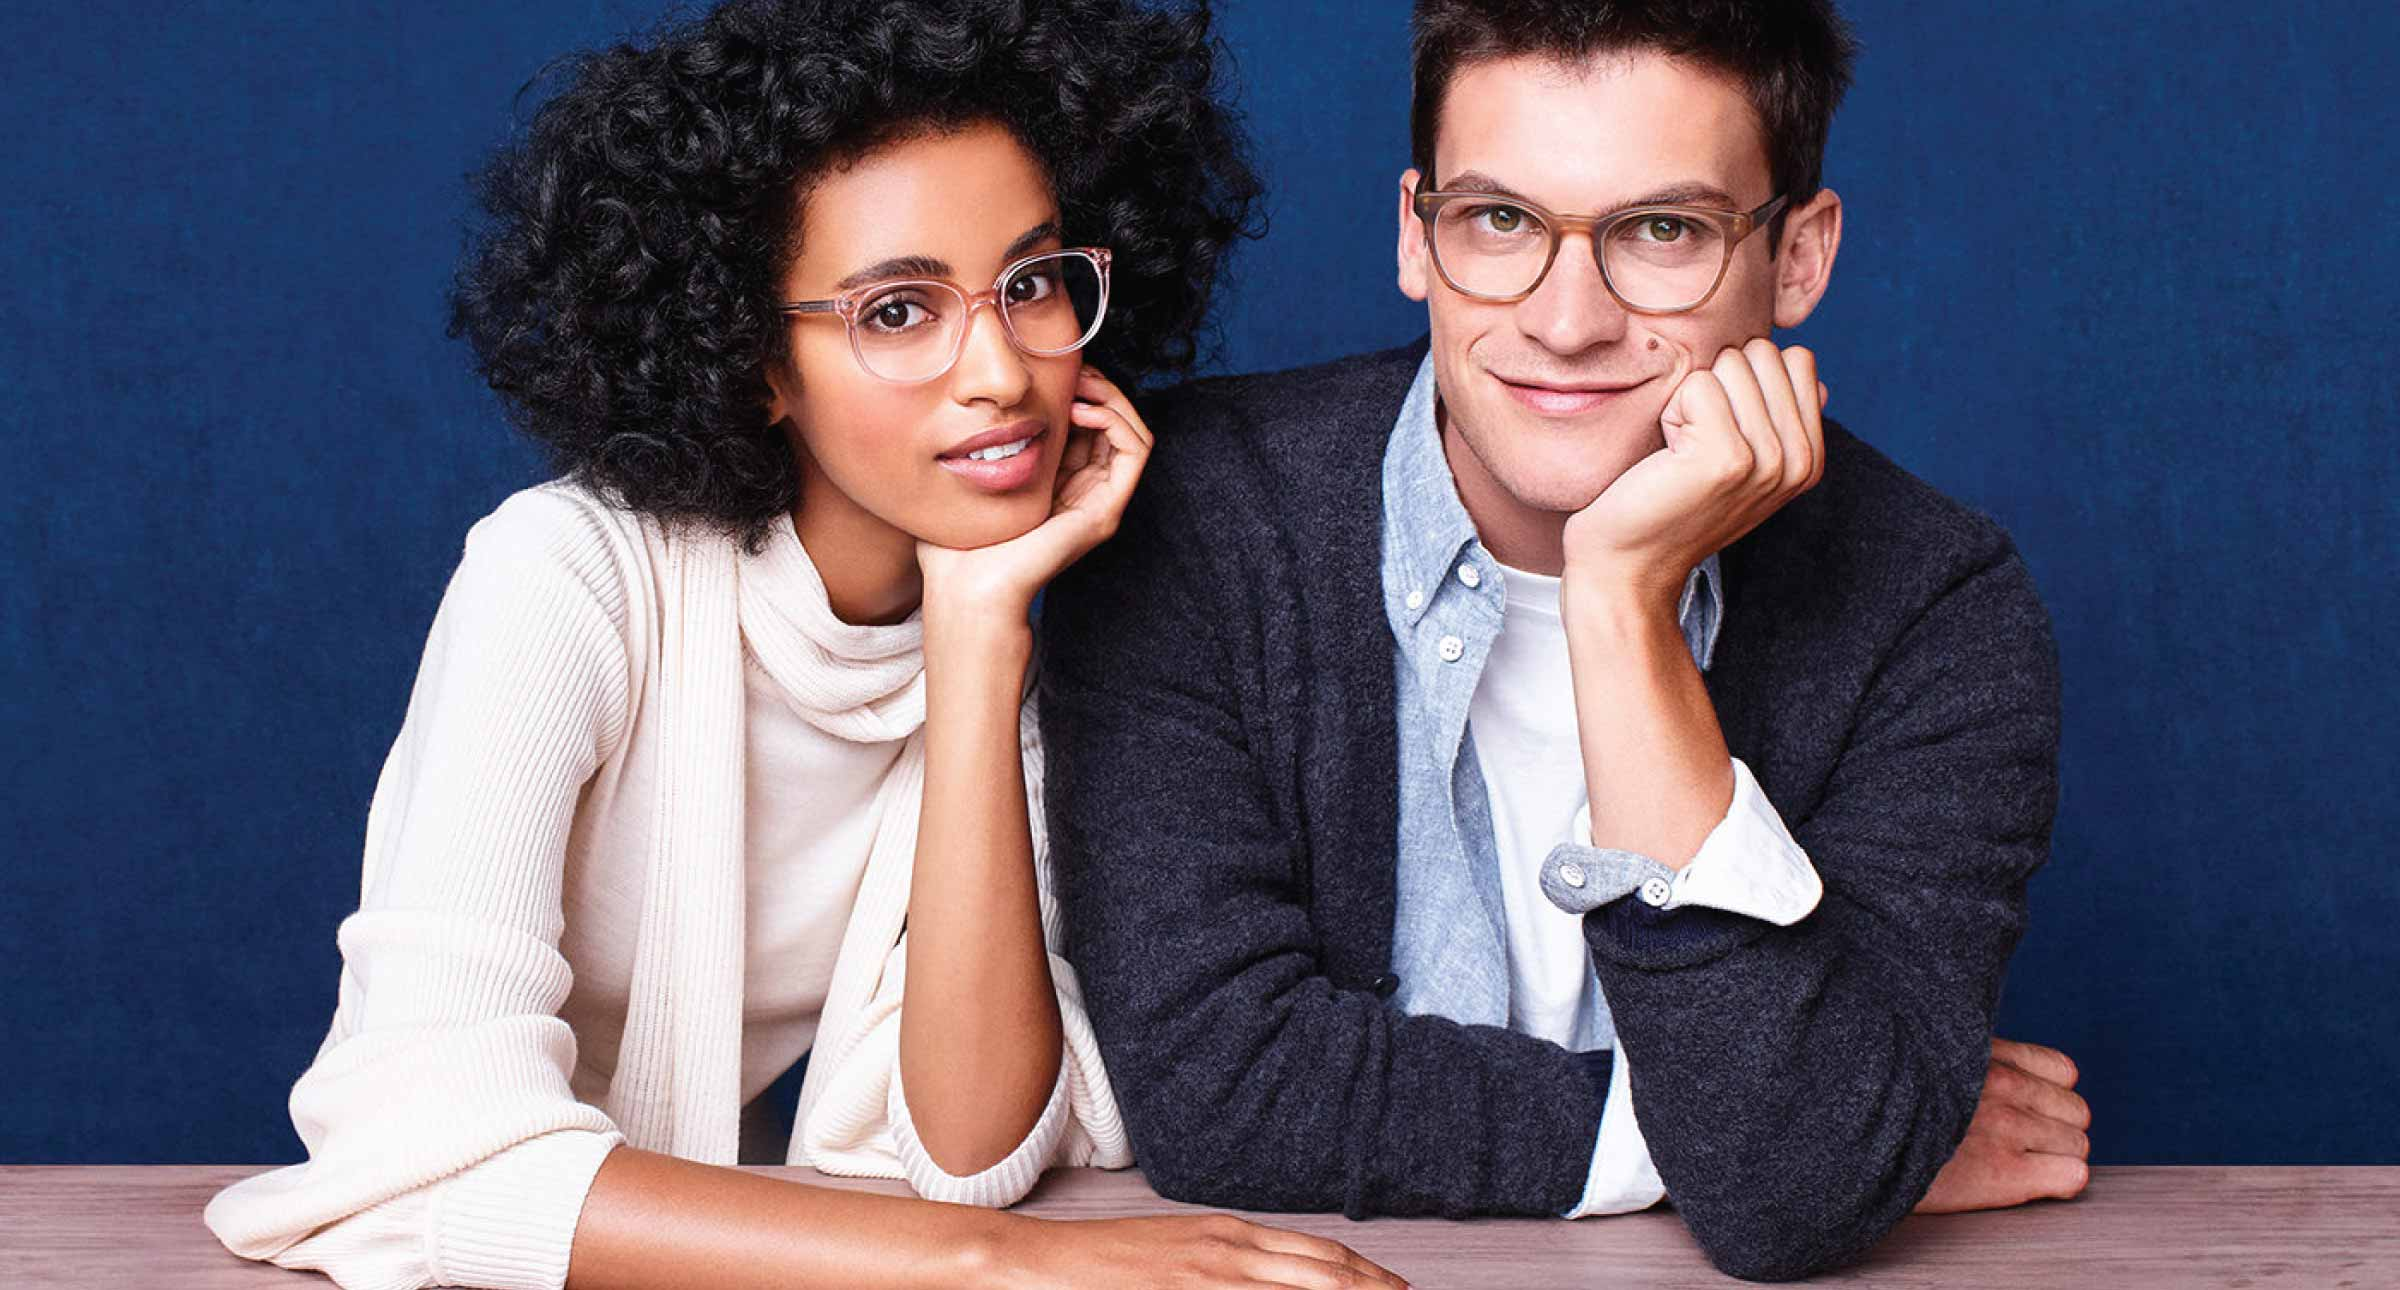 Woman and Man modelling Warby Parker eyeglasses